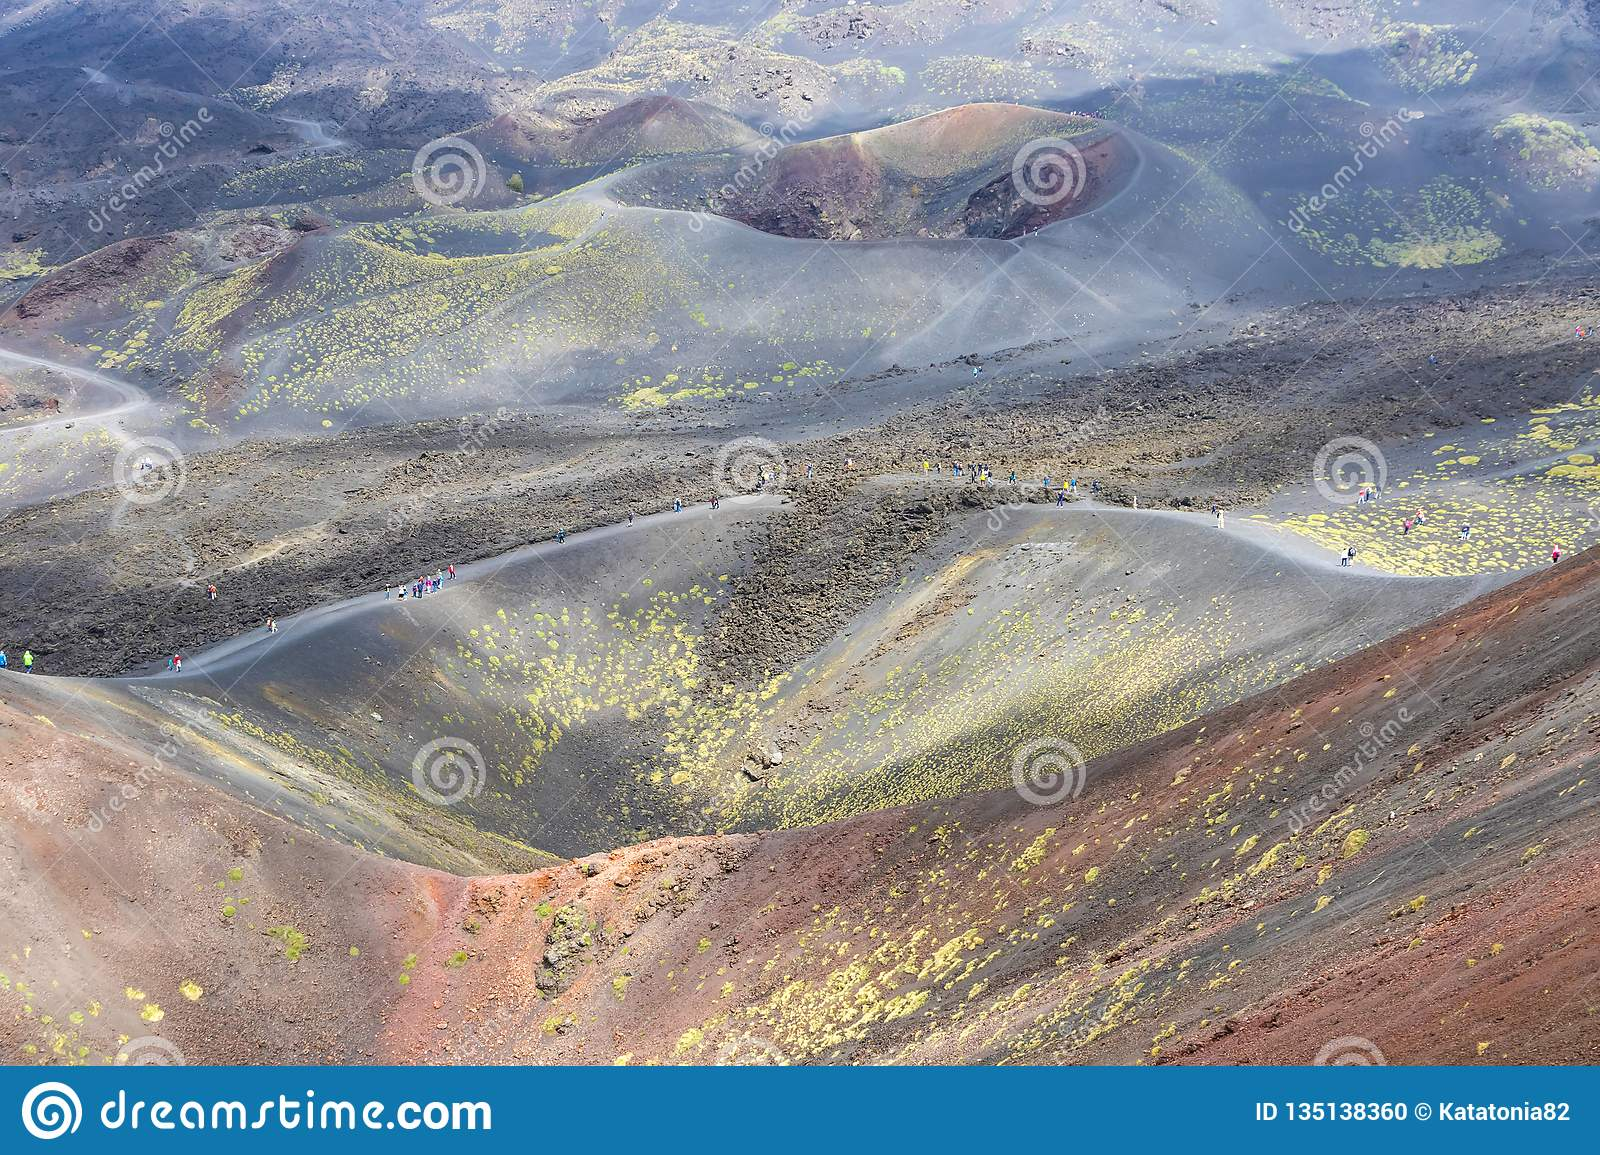 Crater Silvestri Superiori on Mount Etna, Sicily, Italy